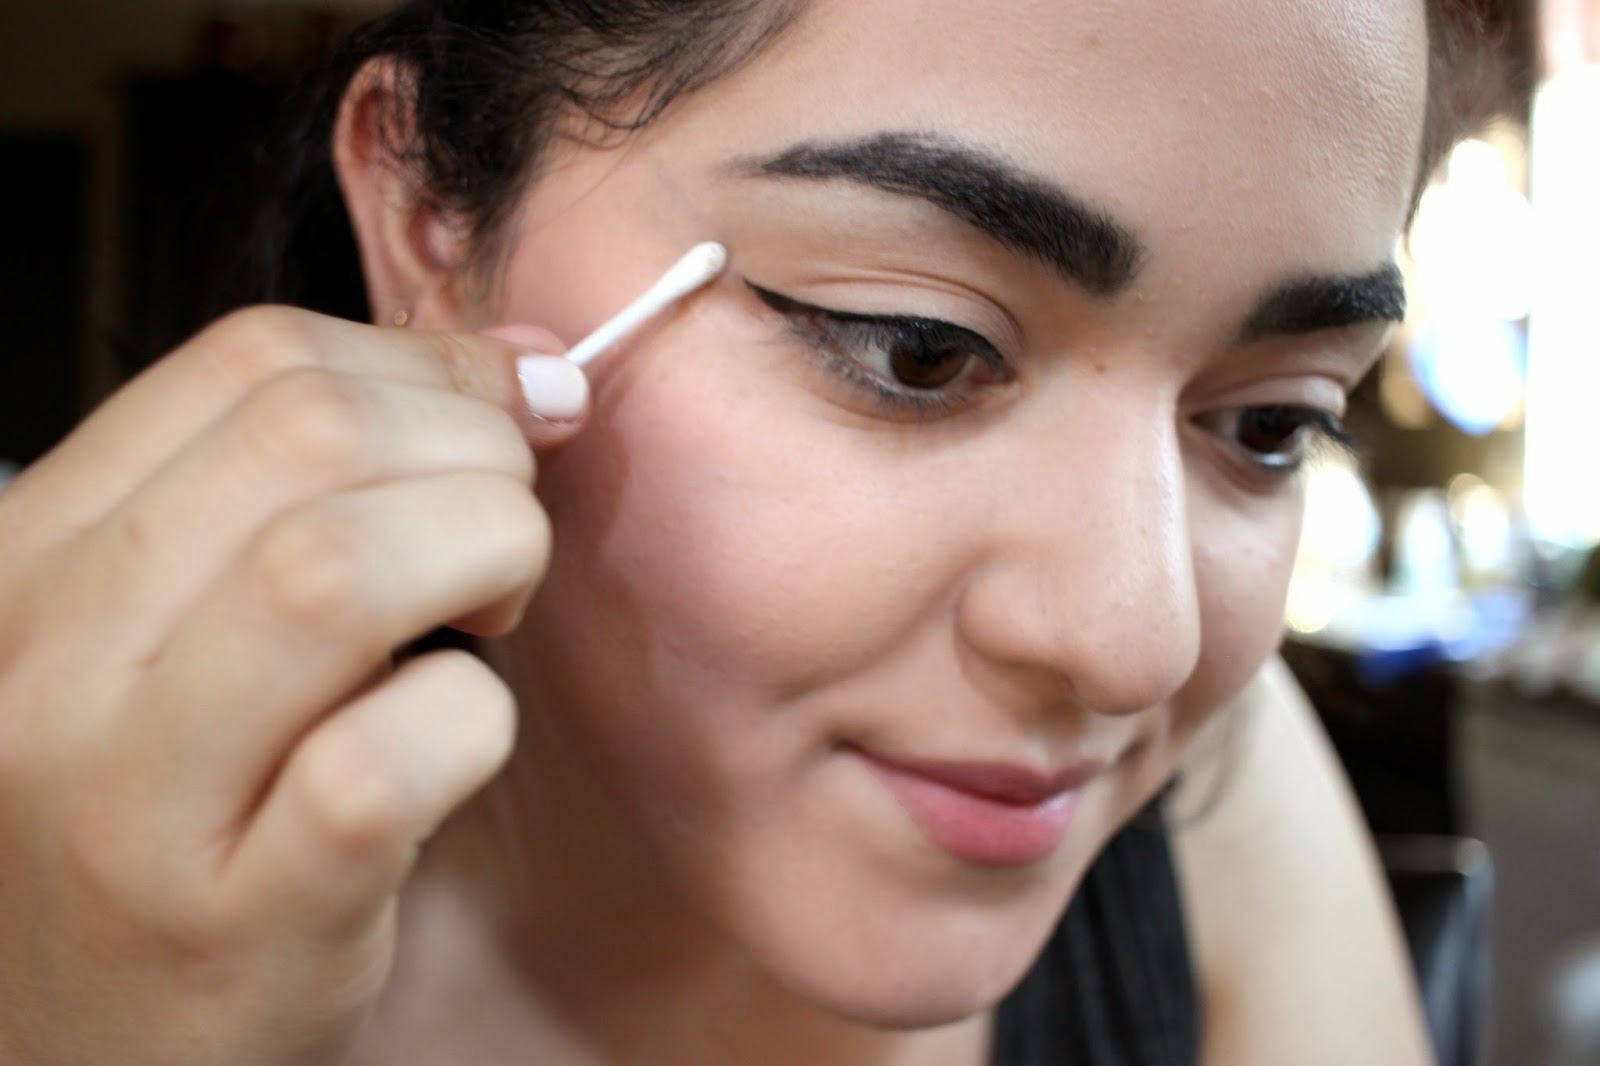 The Easiest Way to Fix Makeup Mistakes